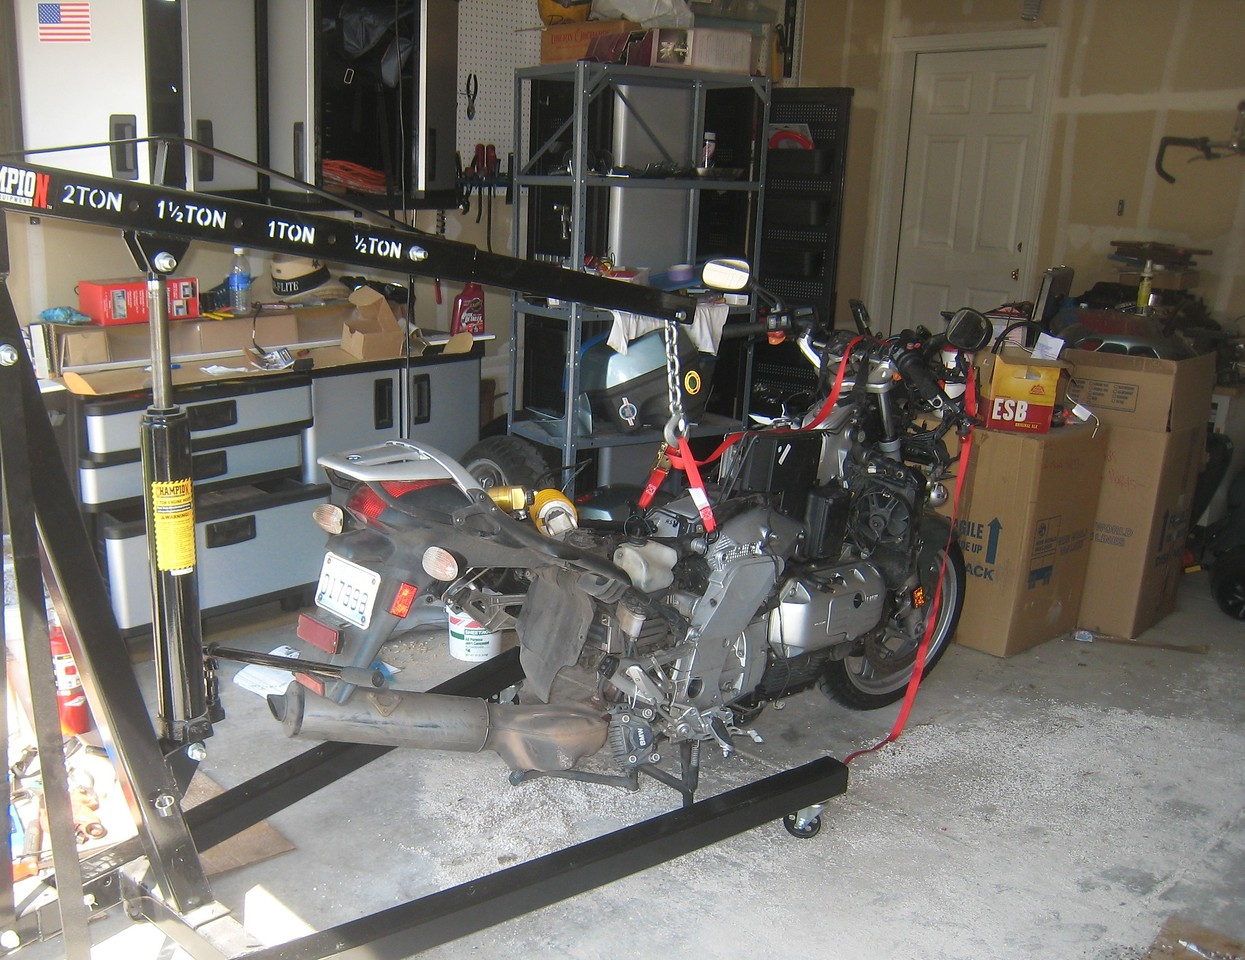 The bike is now supported by the hoist.  The hoist is used to lift the frame off the engine, which provides access to the alternator.  This is almost the pinnacle of the teardown.  After I remove the alternator, I can install the replacement and begin the process of reassembly.